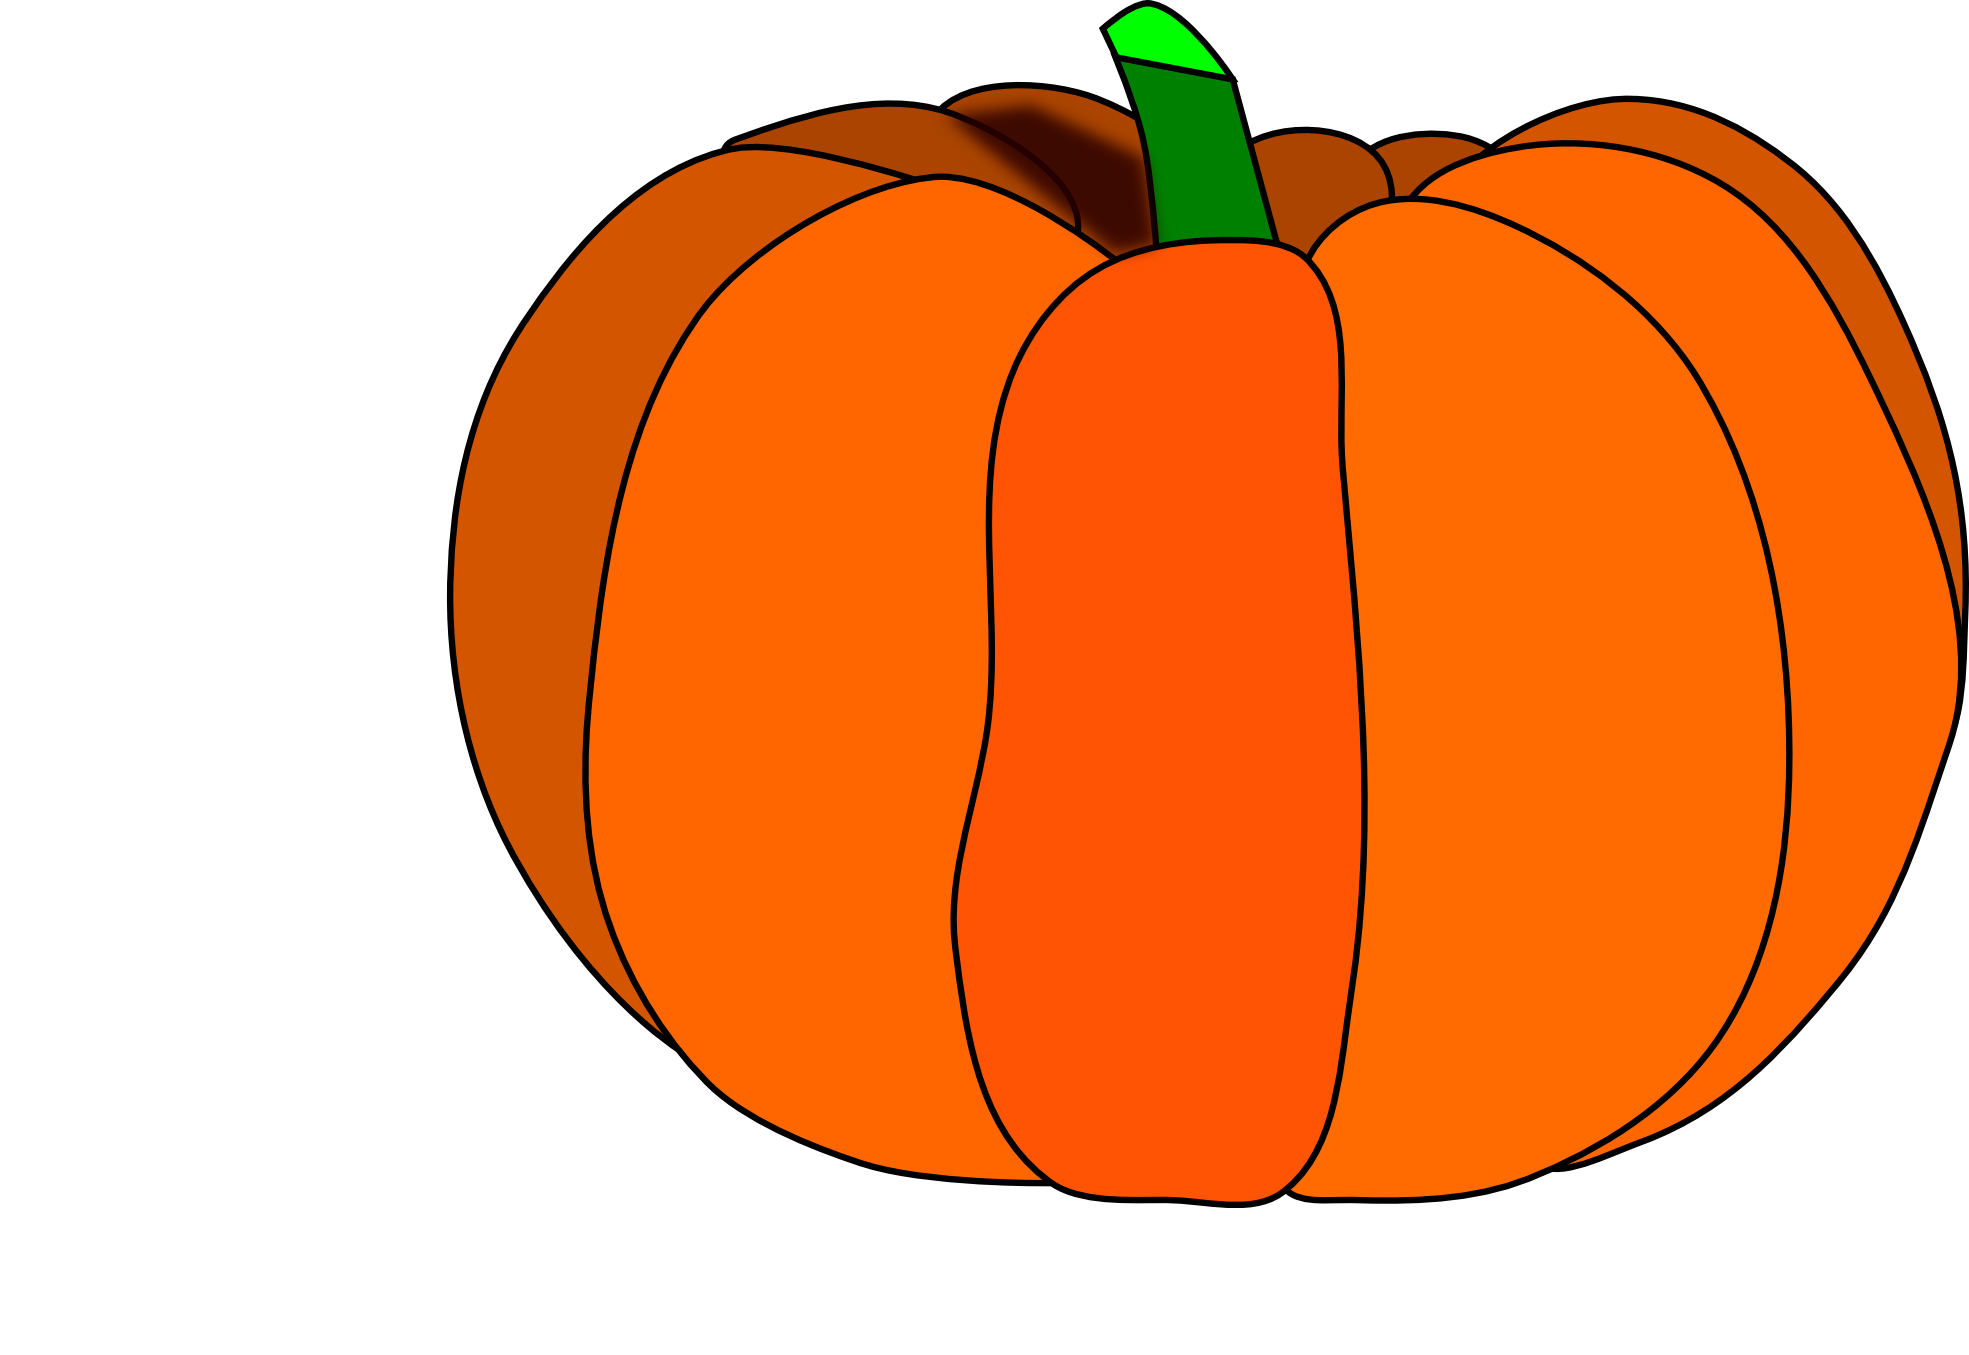 Free gold pumpkin clipart clipart transparent download clipartist.net » Clip Art » Potiron Pumpkin openclipart.org 2013 ... clipart transparent download